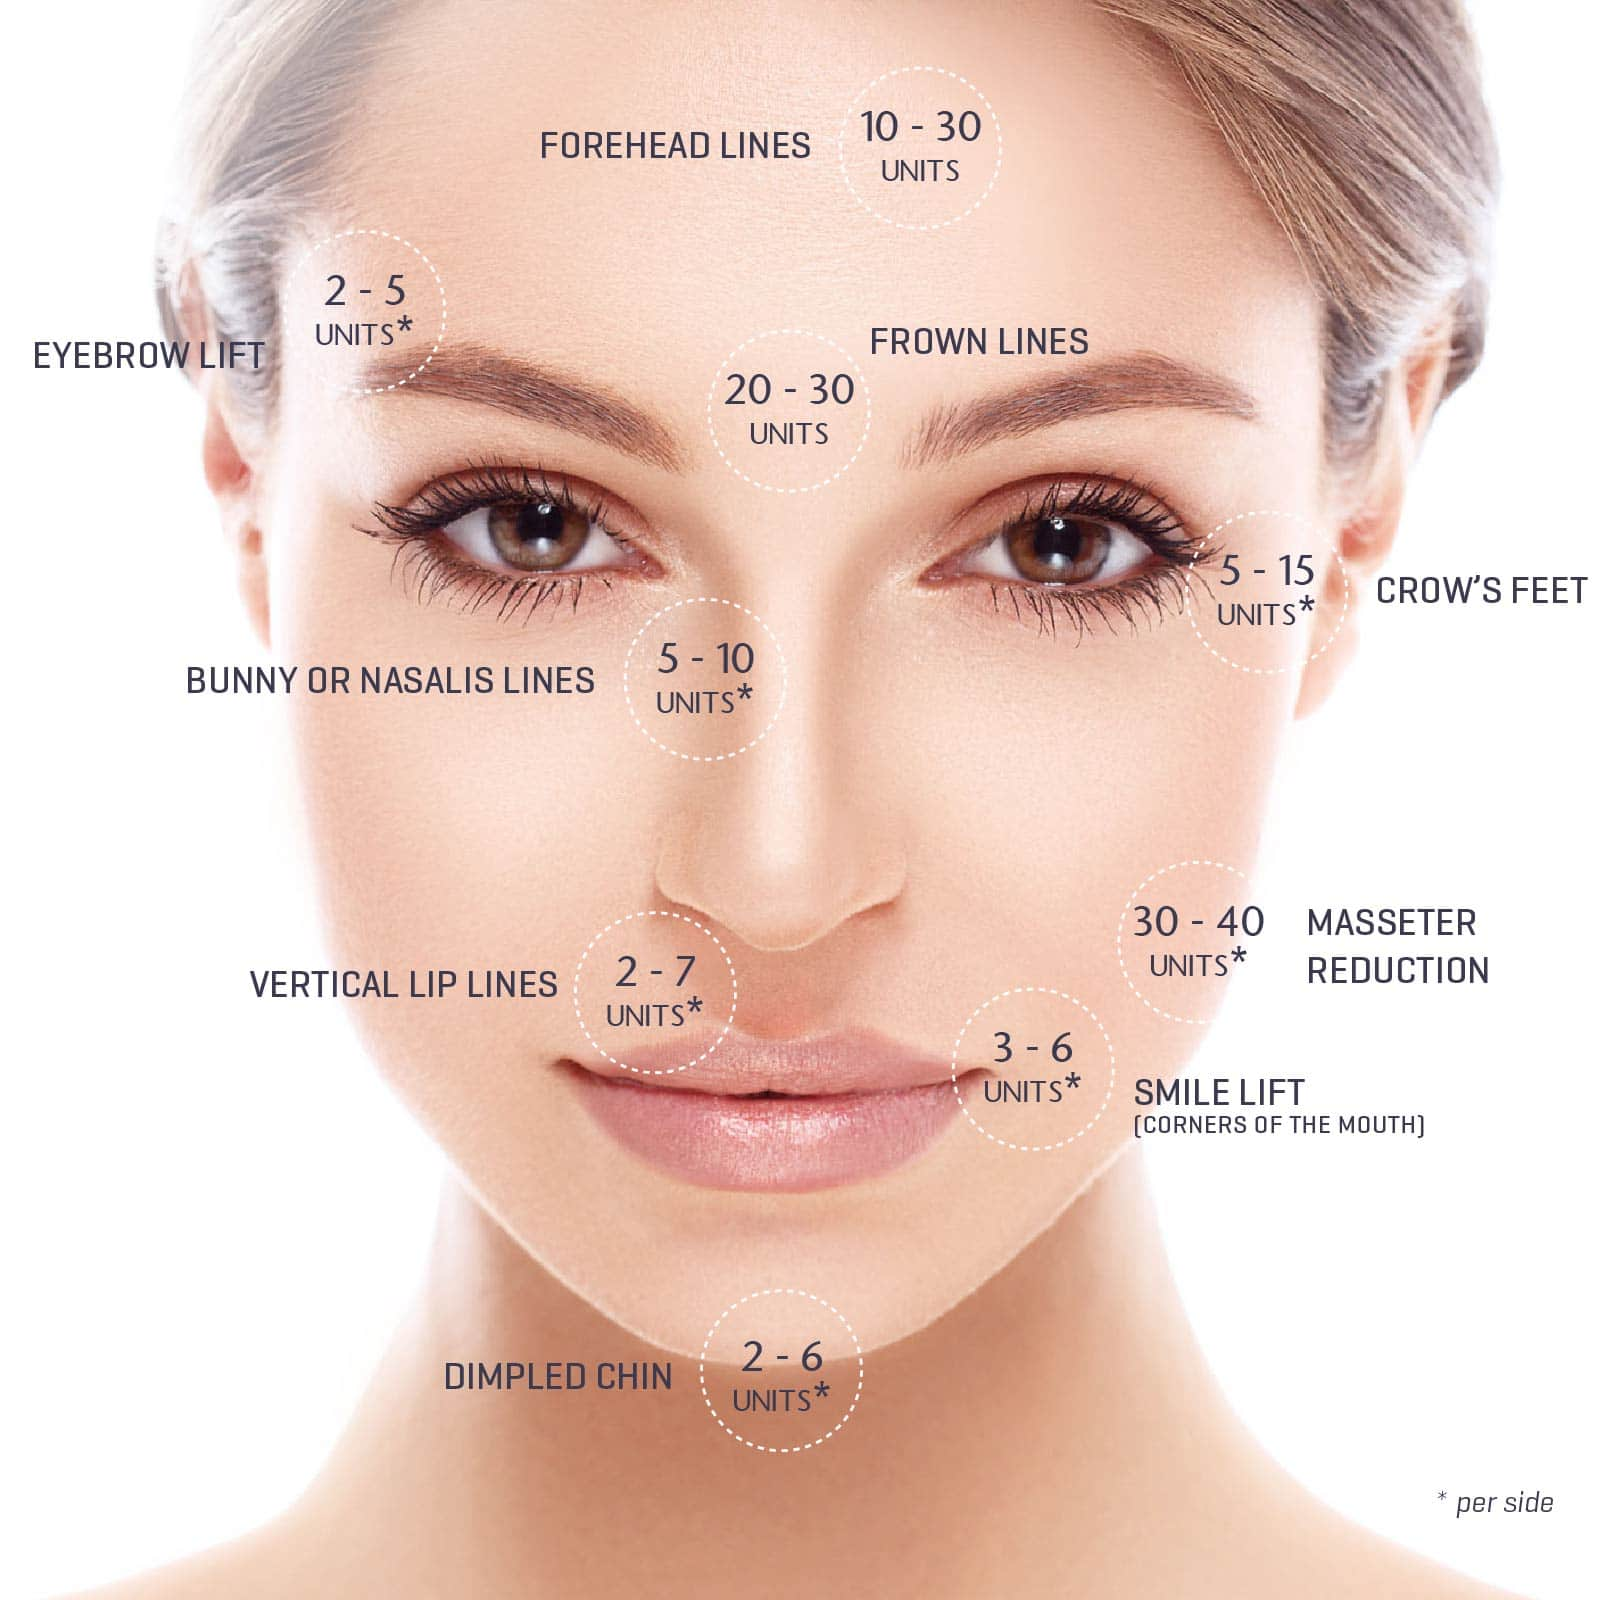 anti-wrinkle injections pricing, rejuvenation clinics of ... botox eye diagram